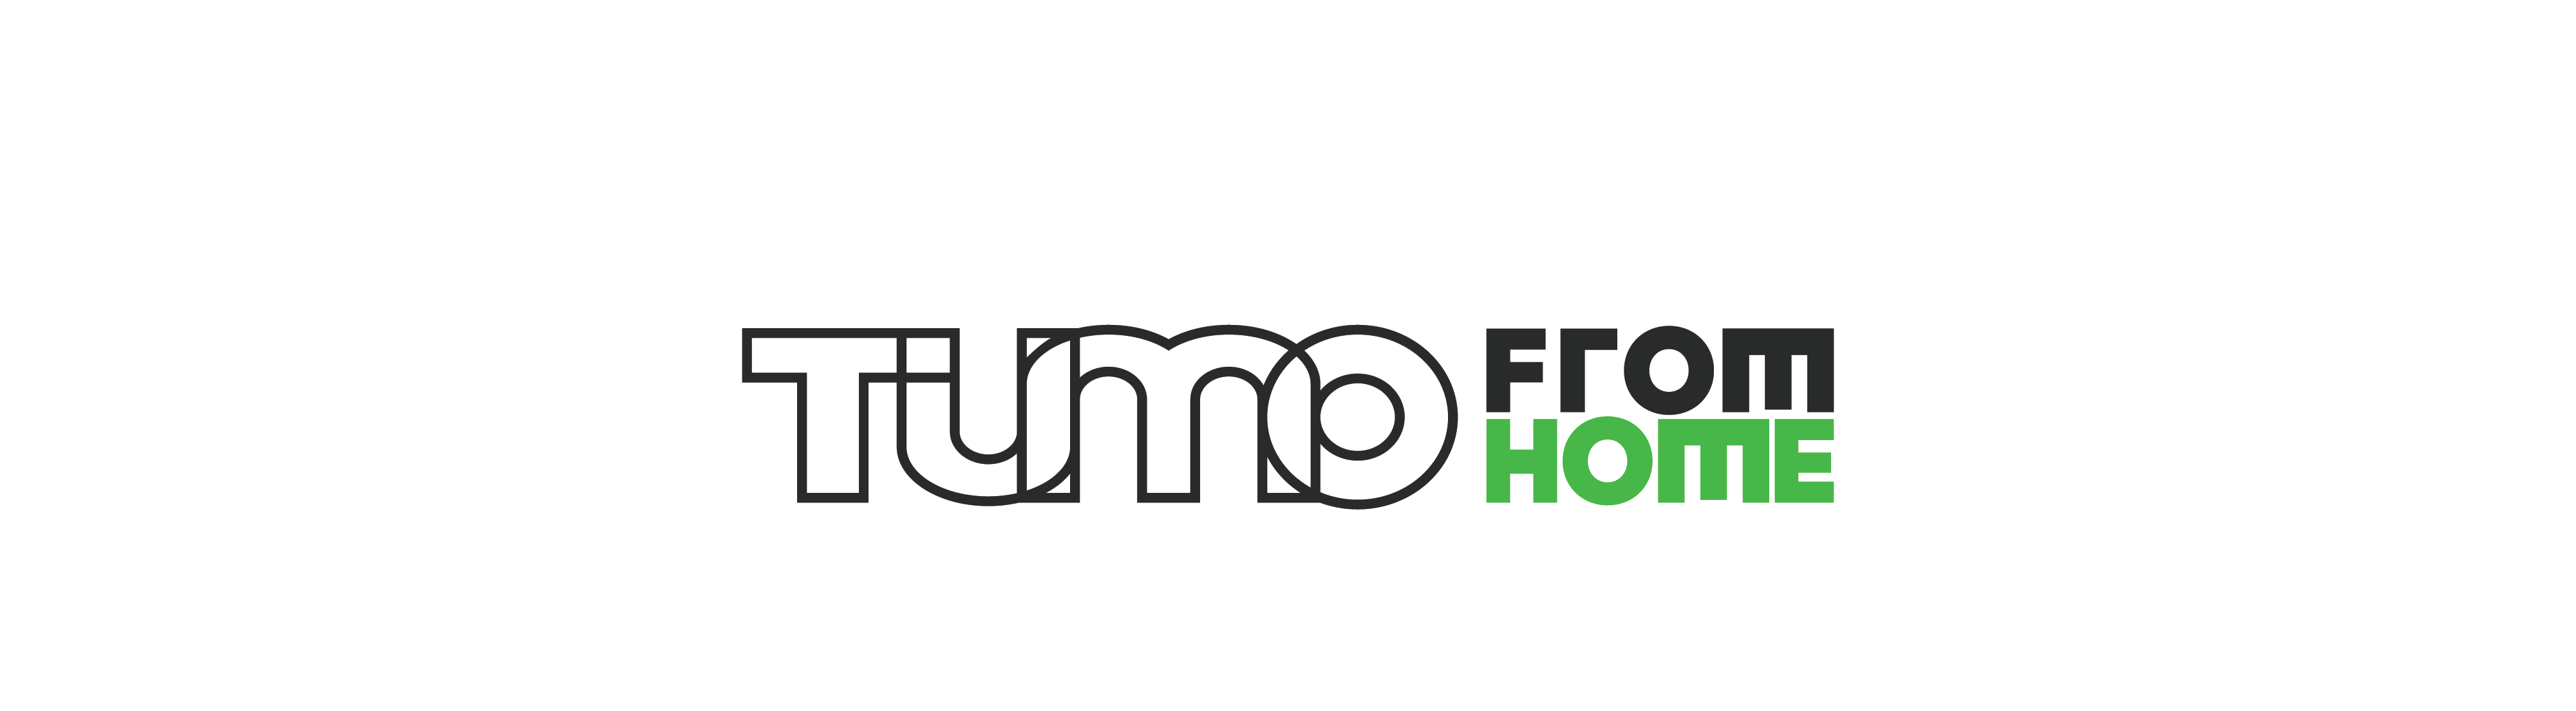 հօմե 02 - Stay home, come to TUMO